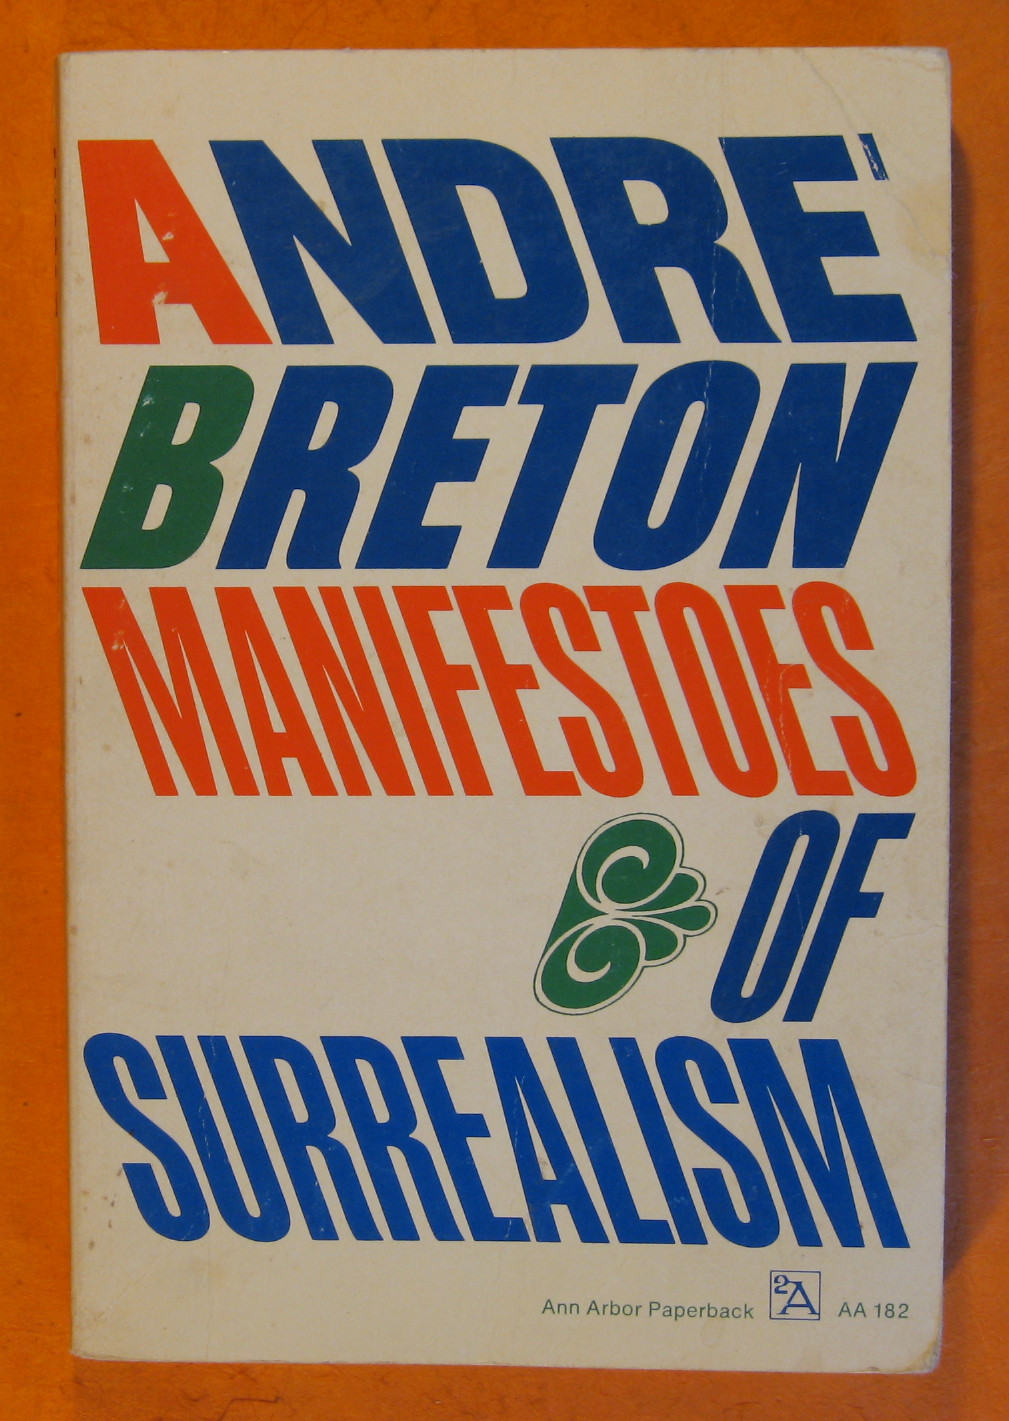 Manifestoes of Surrealism, Breton, Andre